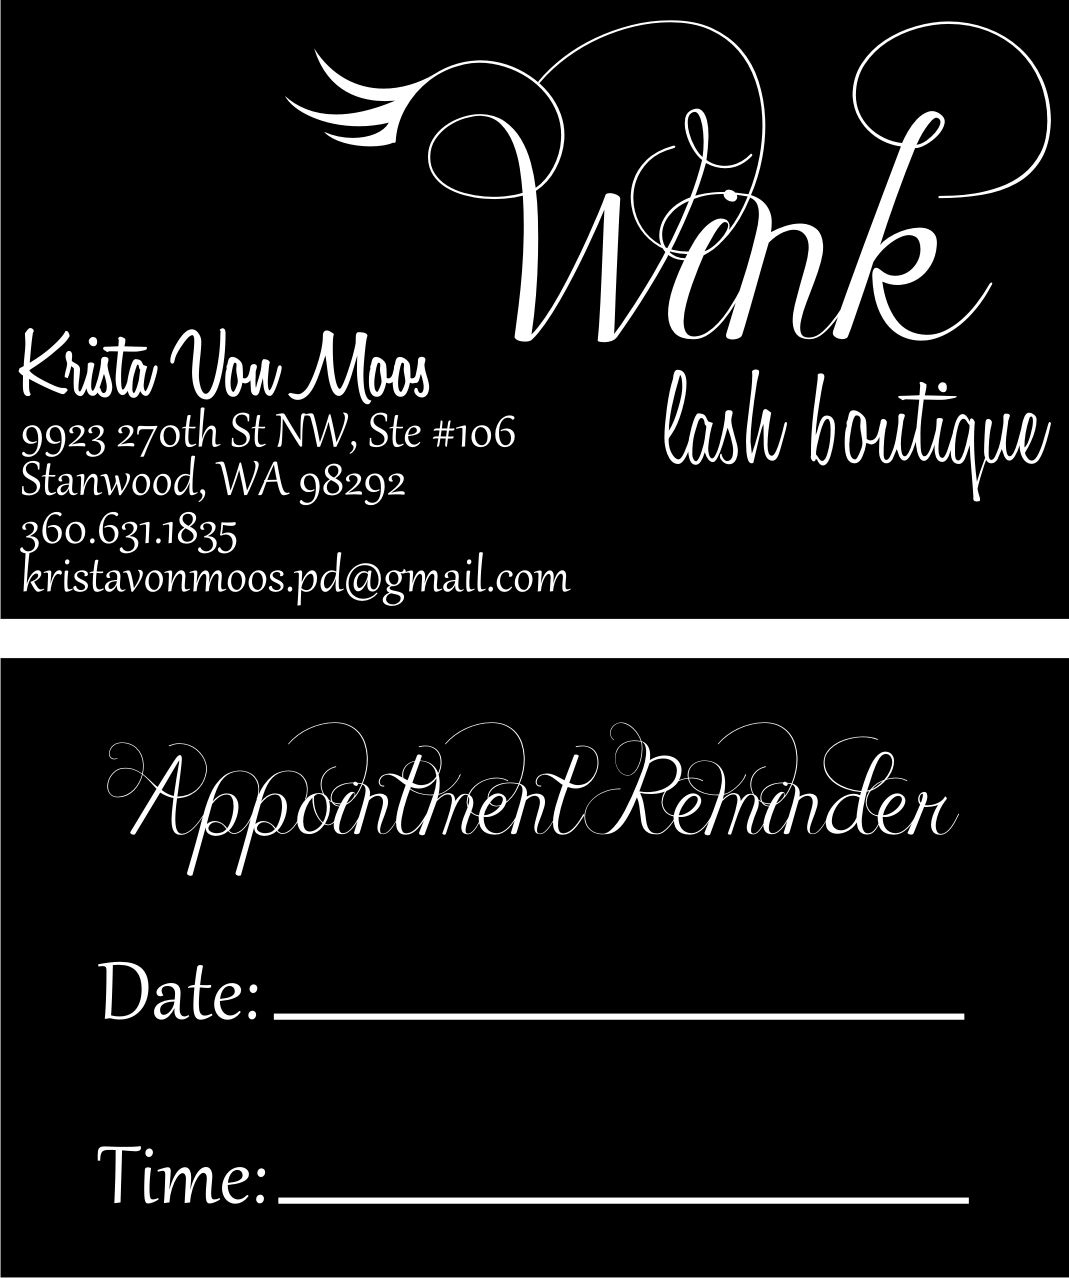 Custom business cards created by the Hats Off inhouse